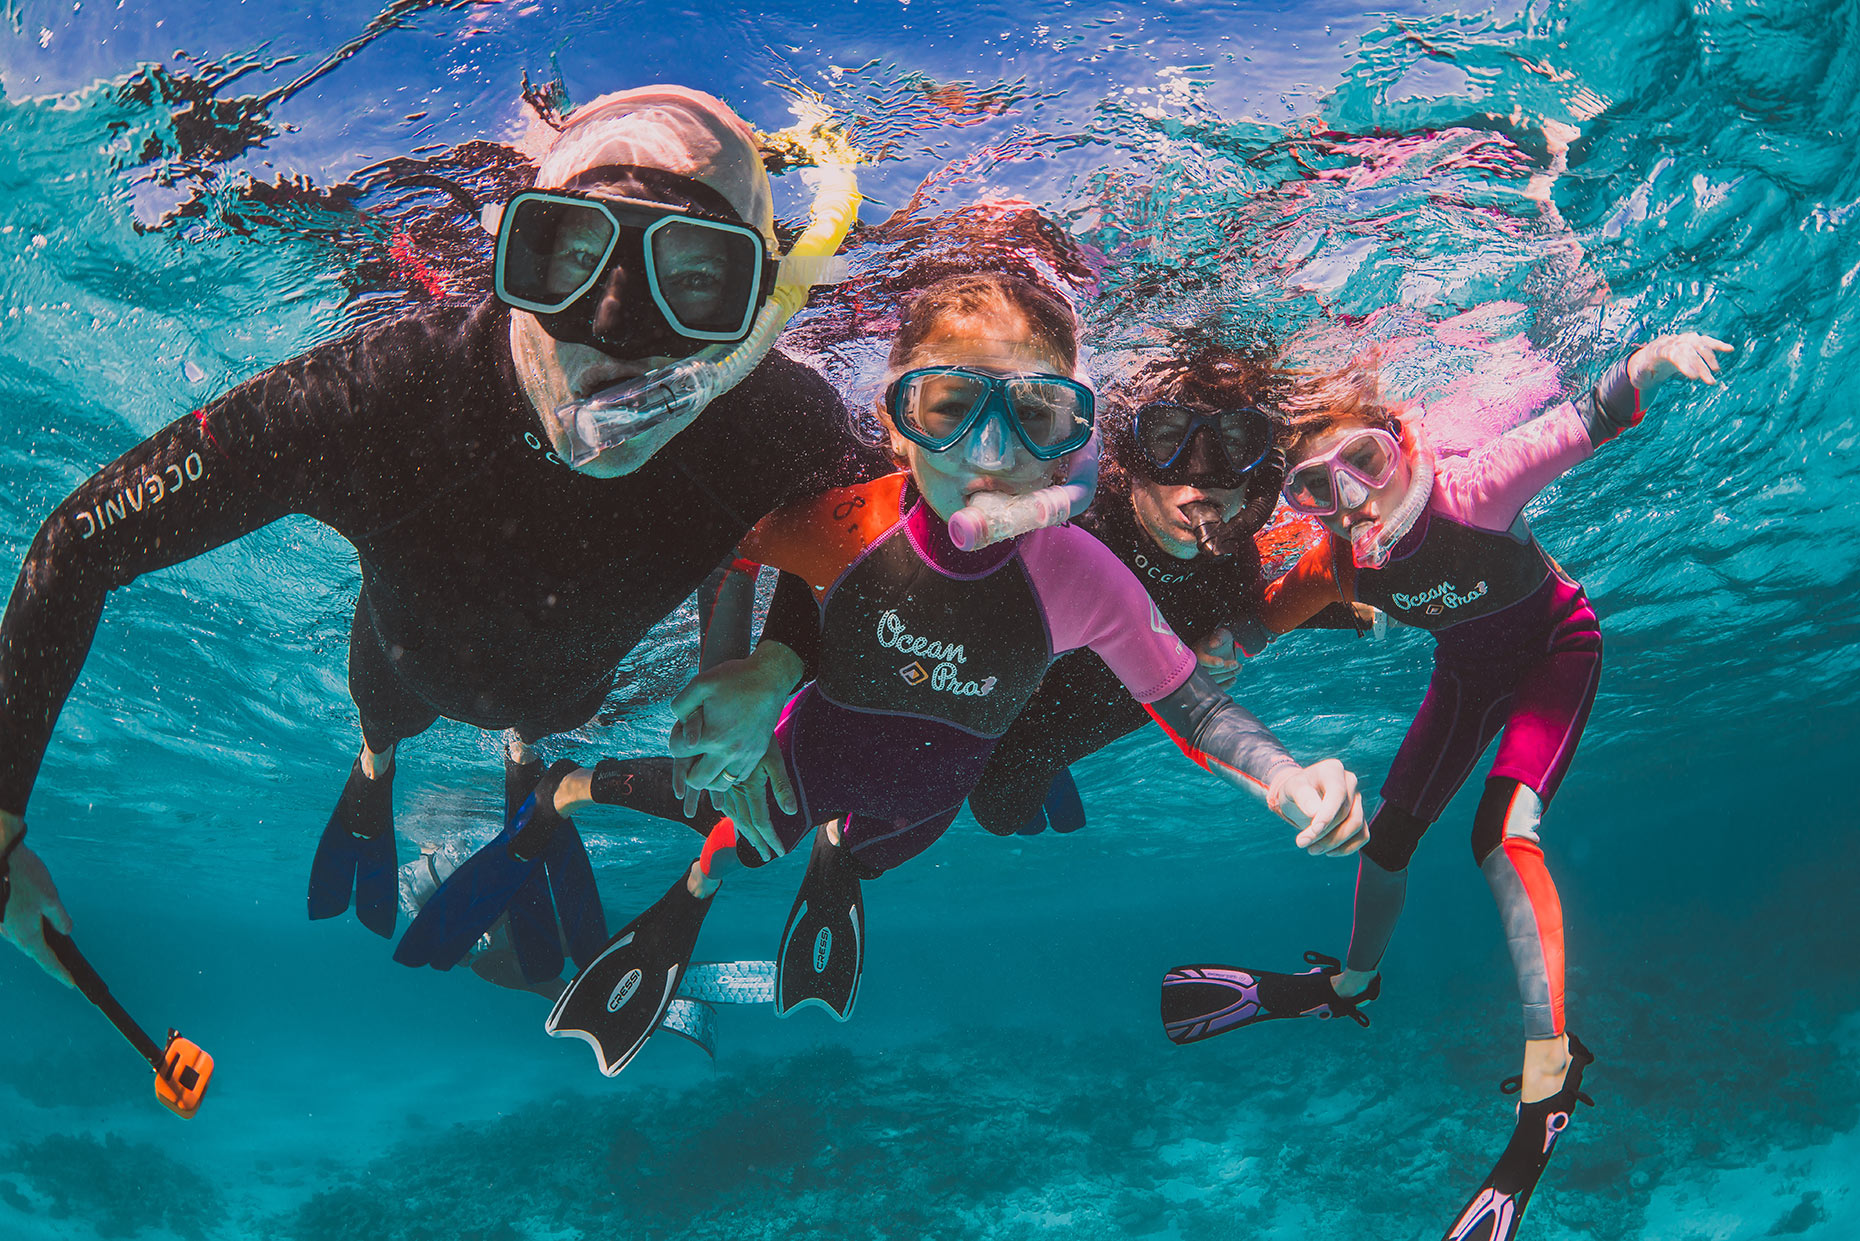 Wanna Try Night Snorkeling in Bunaken? Here The Guide